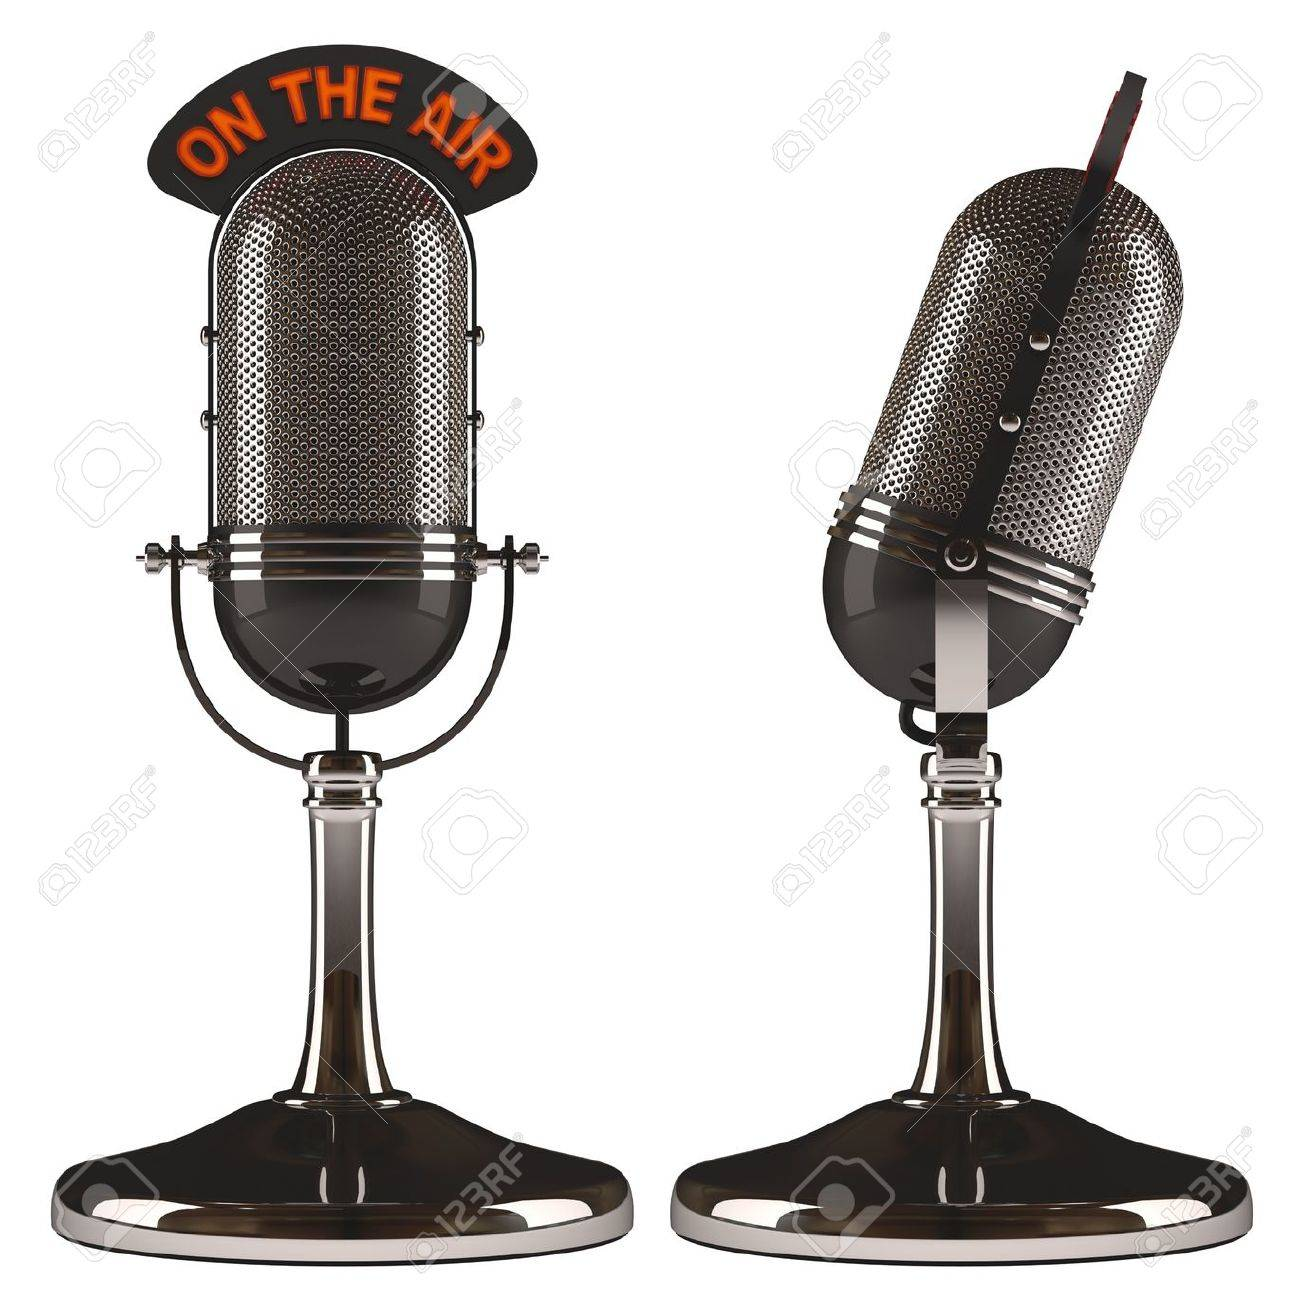 Old classic microphone on white background, easy to isolate. - 20850948